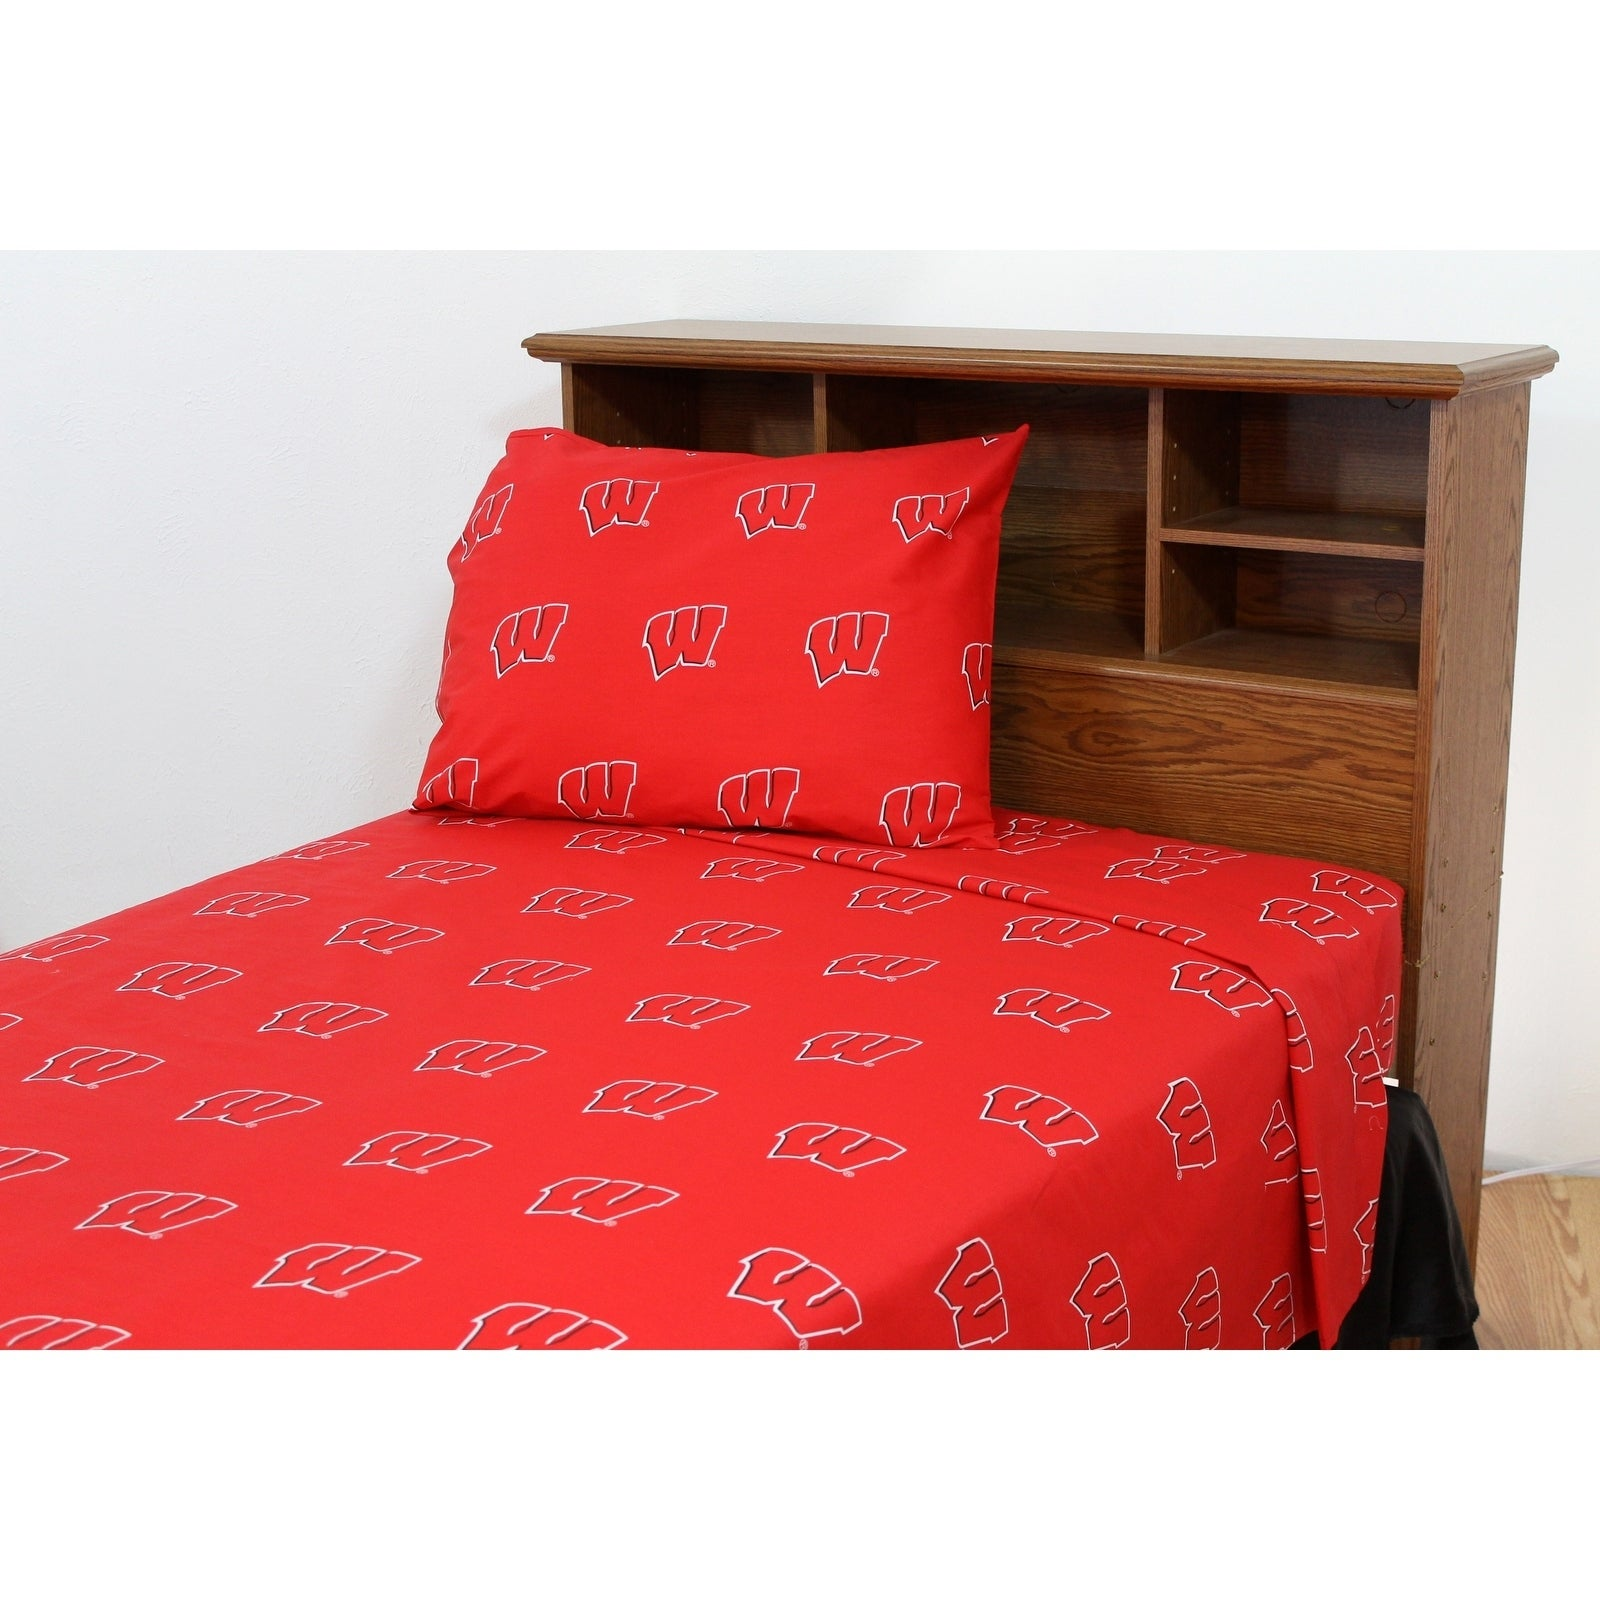 Wisconsin Badgers 100 Cotton Sheet Set Free Shipping Today 18794008